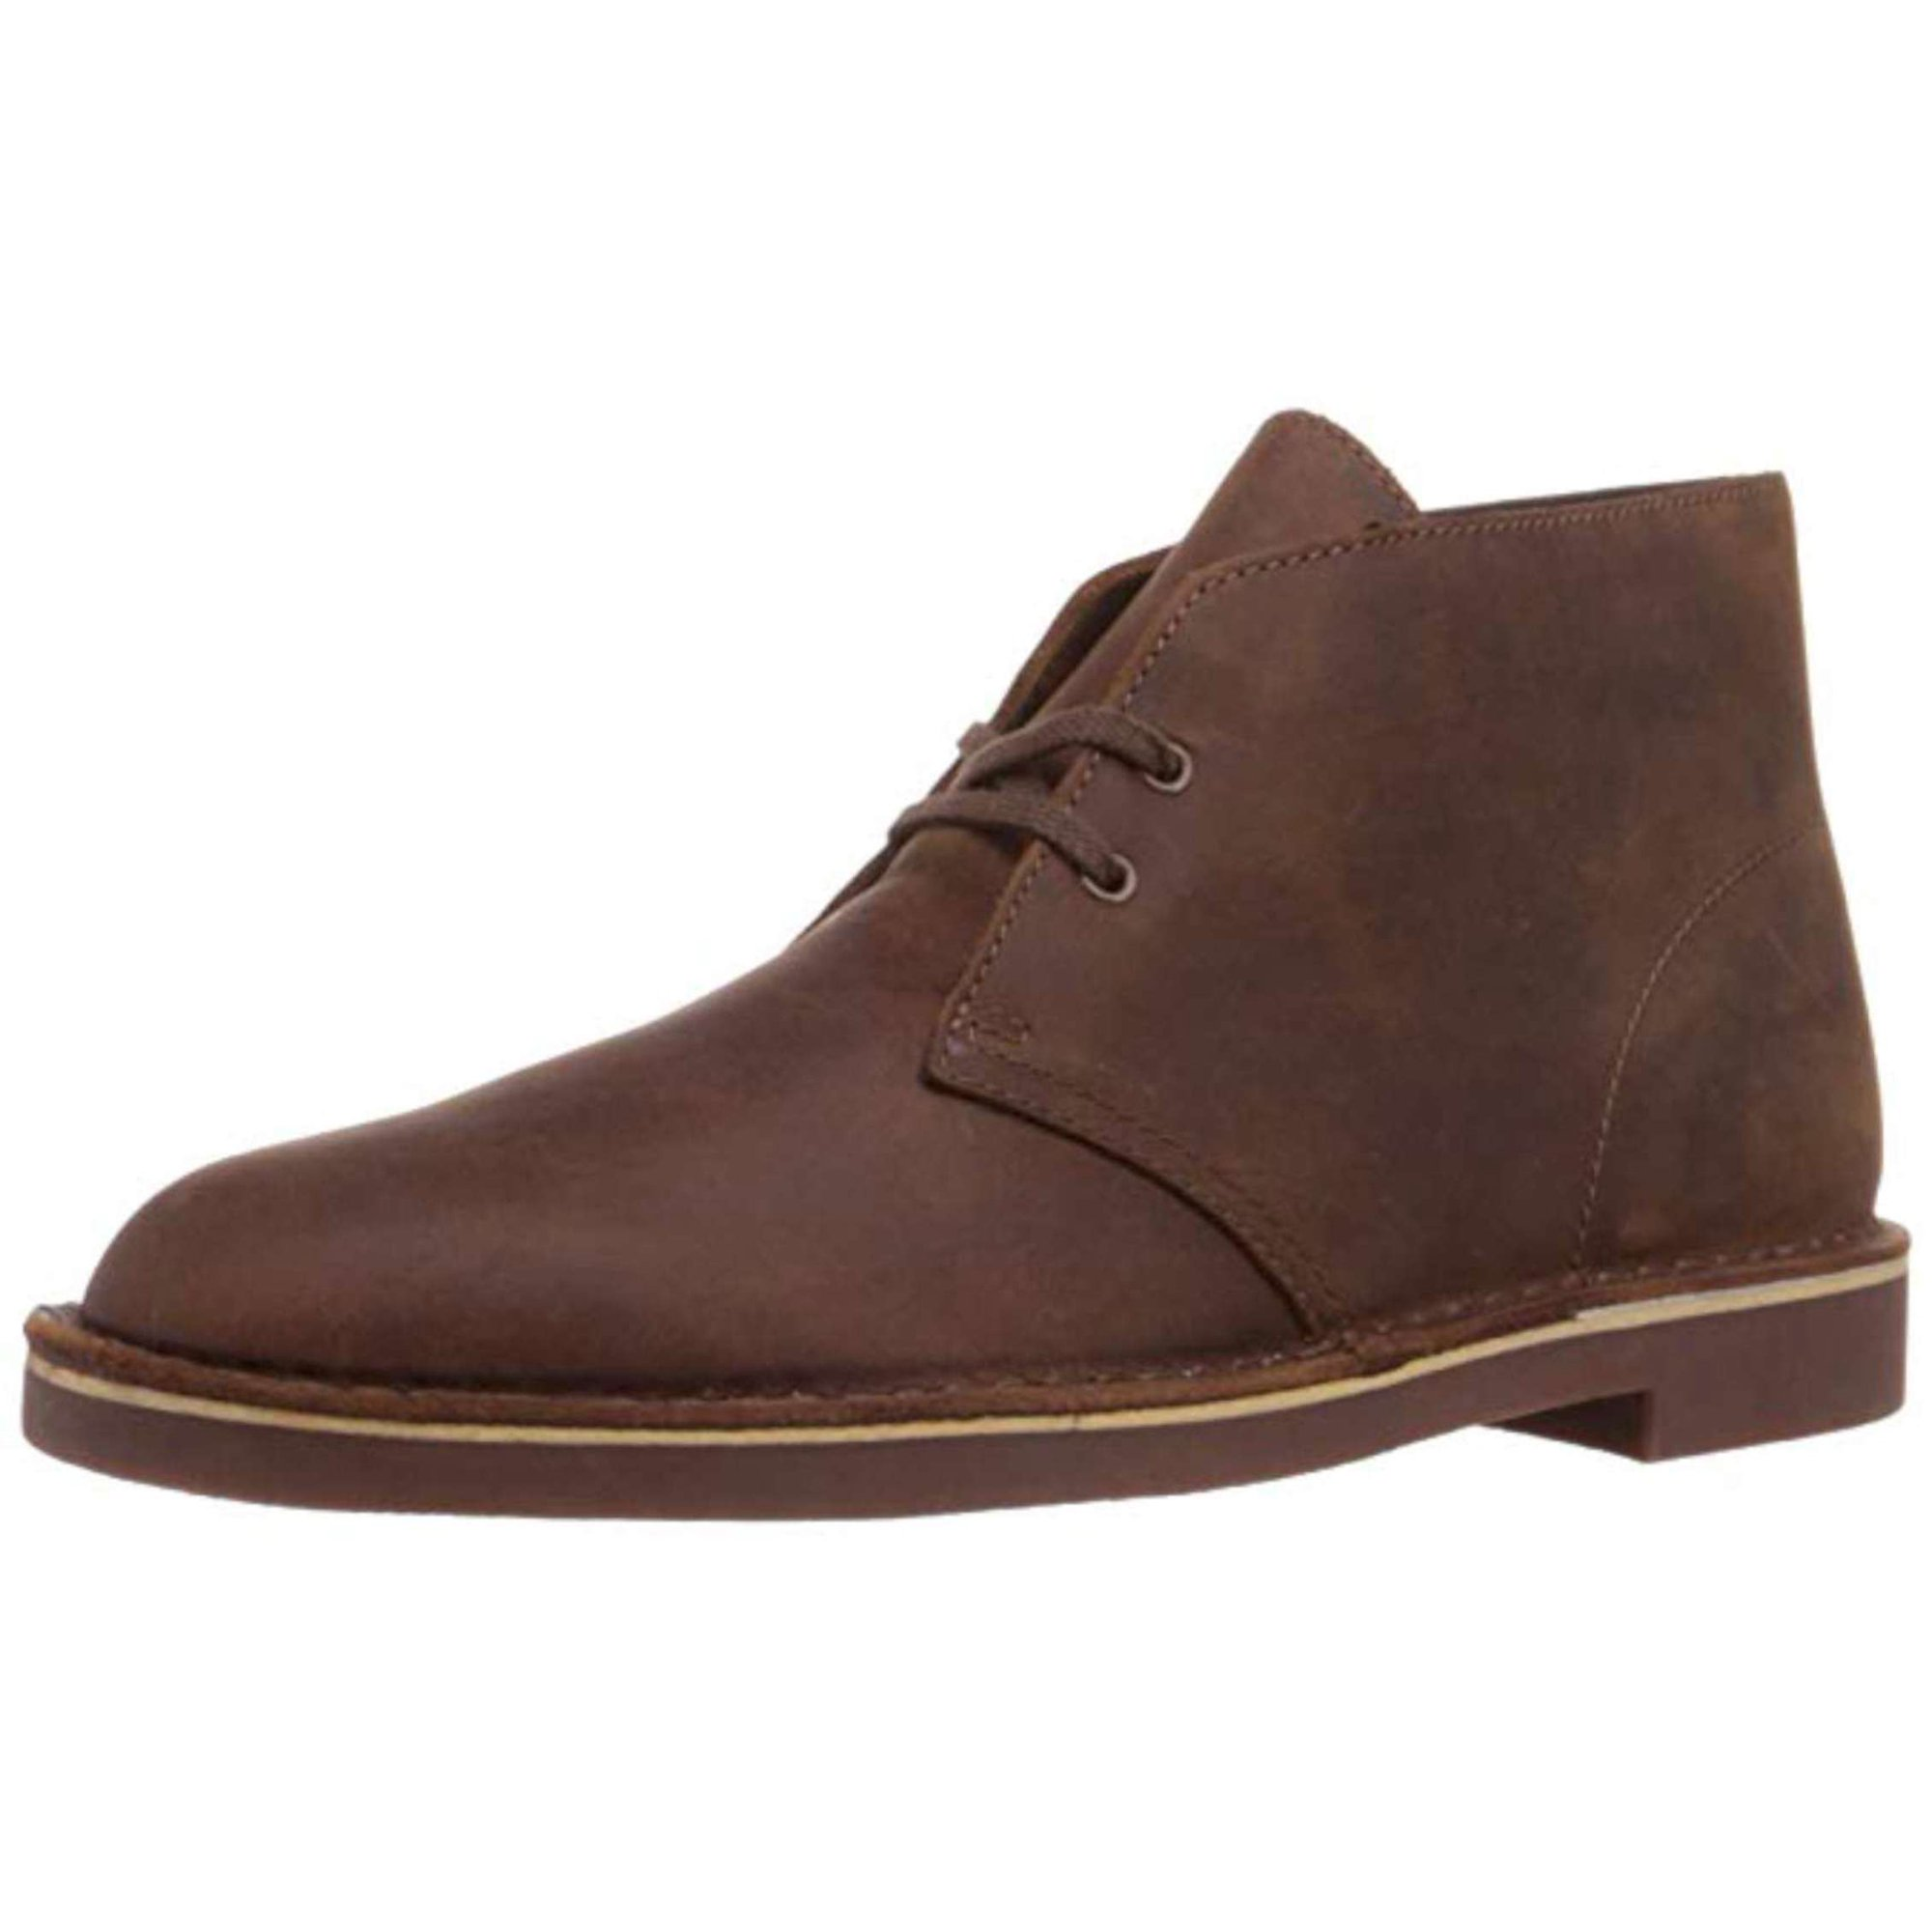 f254c11c78f Clarks Mens Bushacre 2 Leather Round Toe Ankle Fashion Boots ...